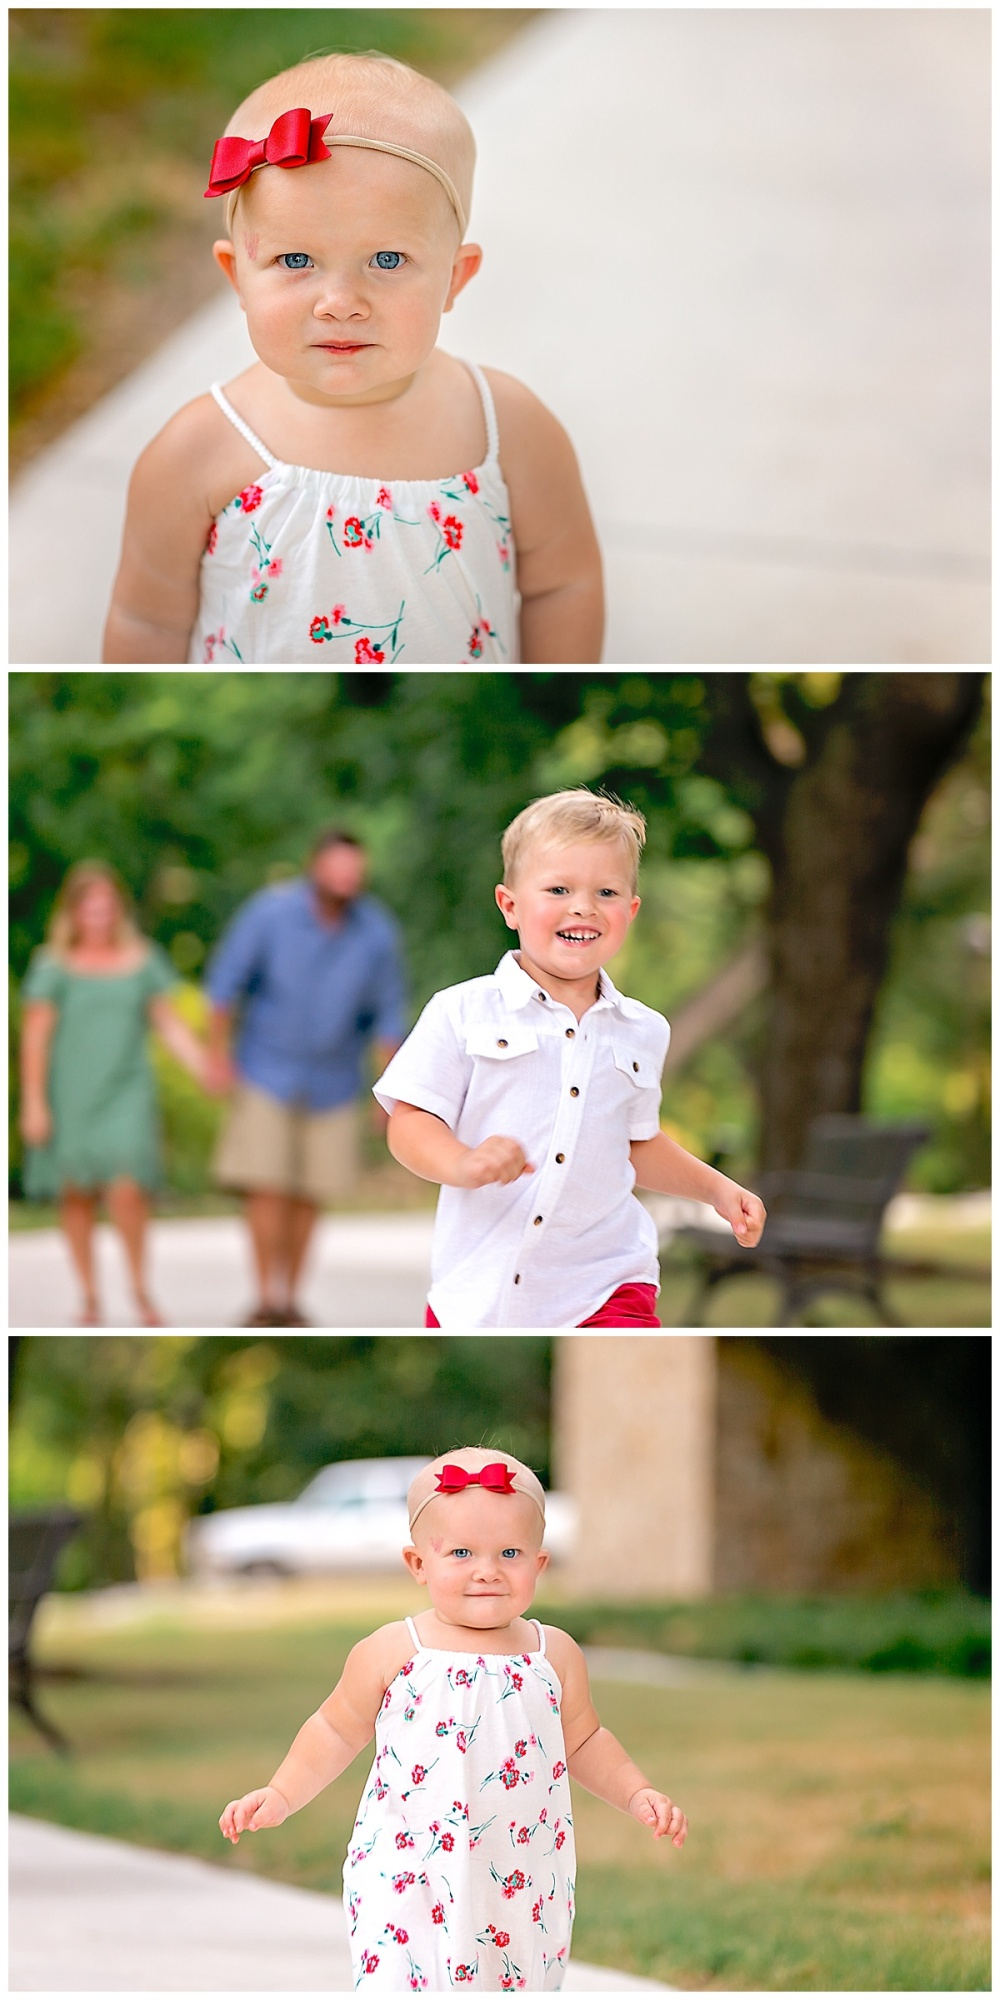 Carly-Barton-Photography-Family-Photos-Walnut-Springs-Park-Seguin-Texas-Pierdolla-Birthday_0003.jpg